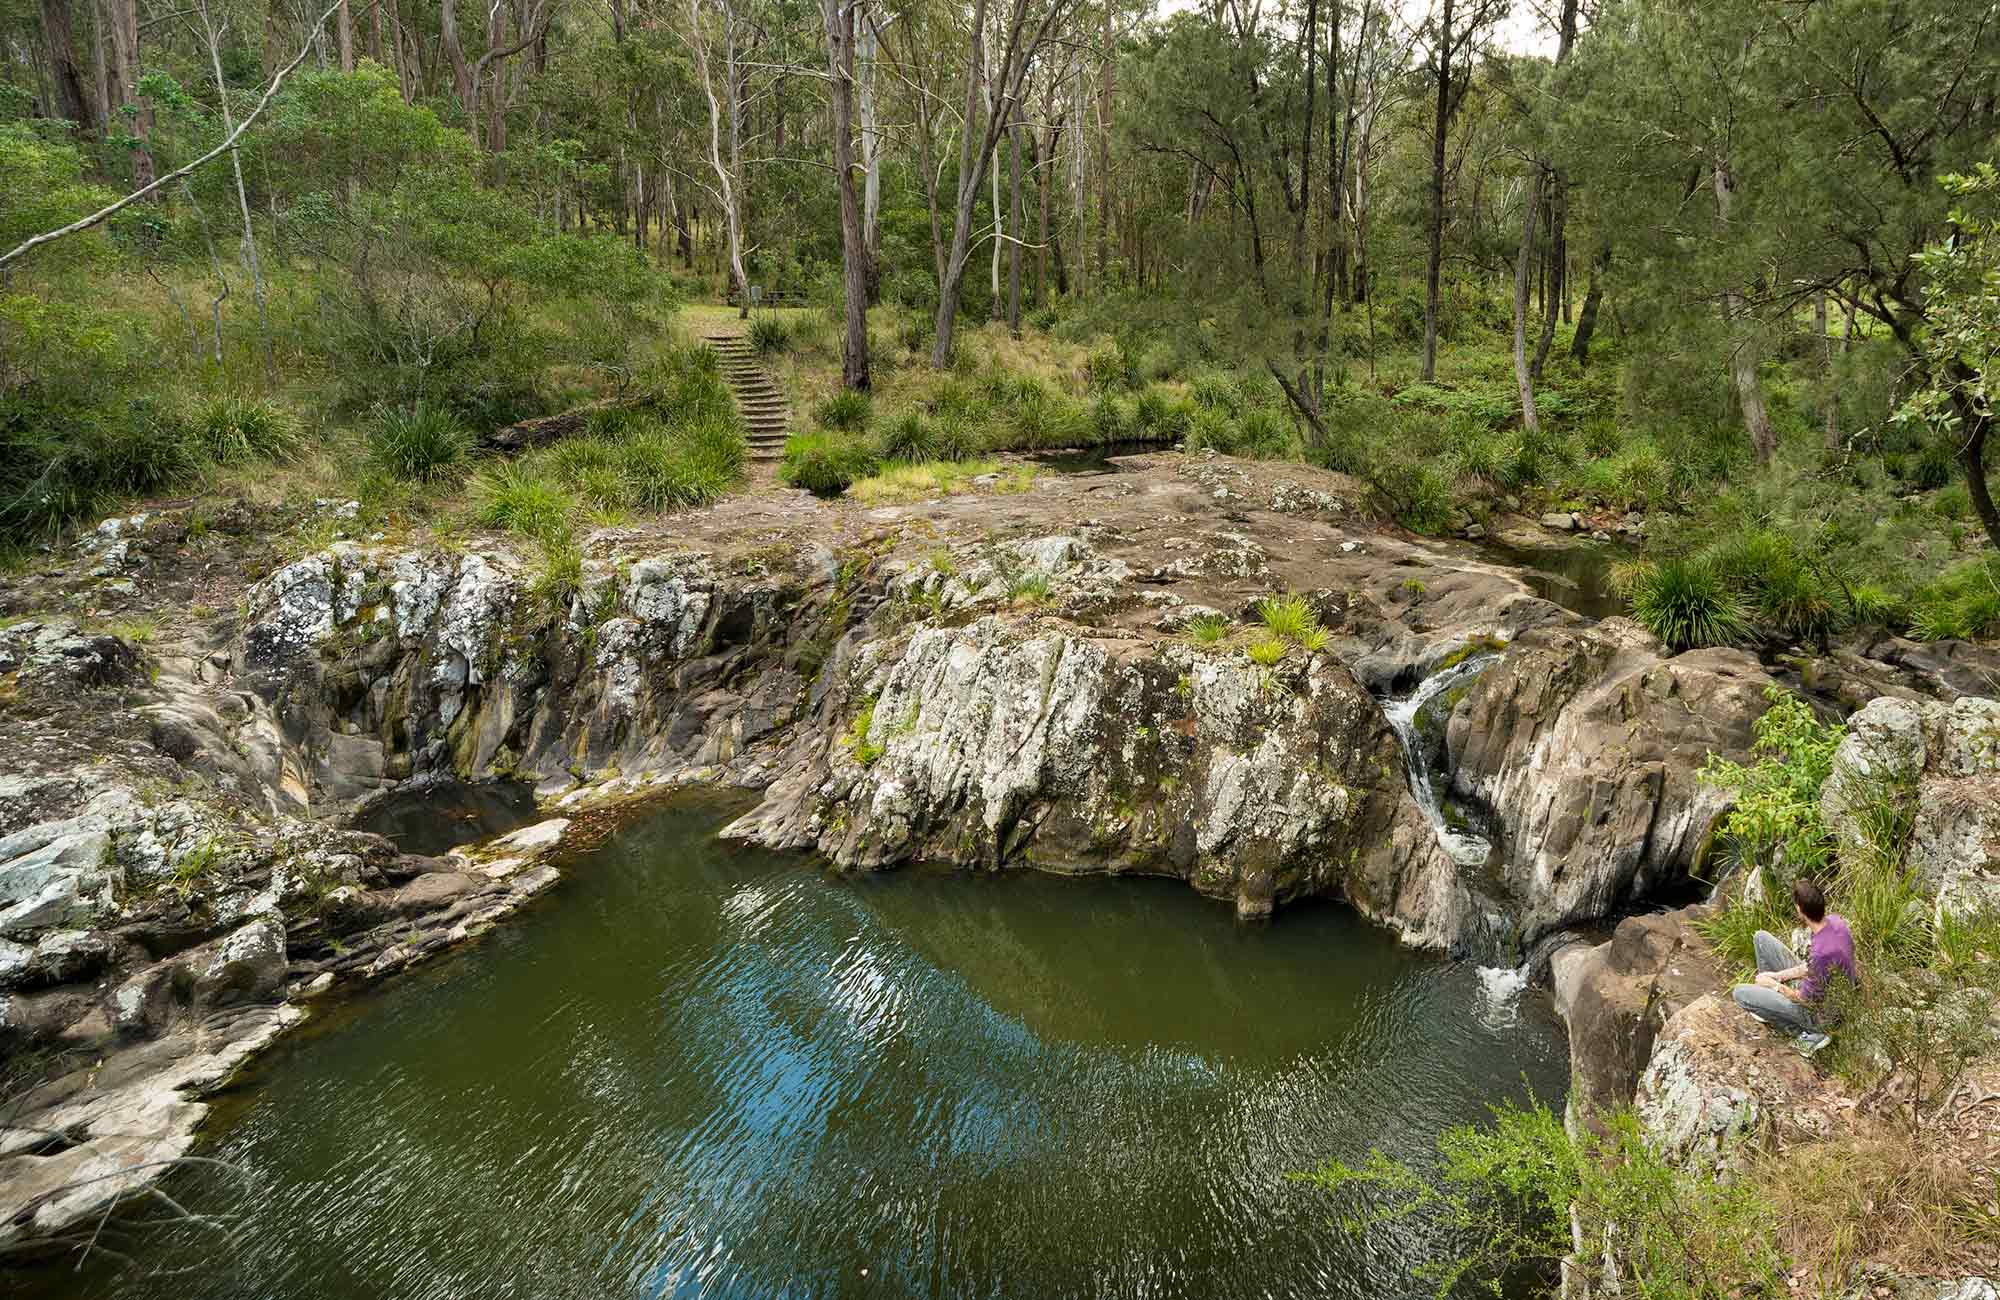 Gorge walking track, Koreelah National Park. Photo: David Young